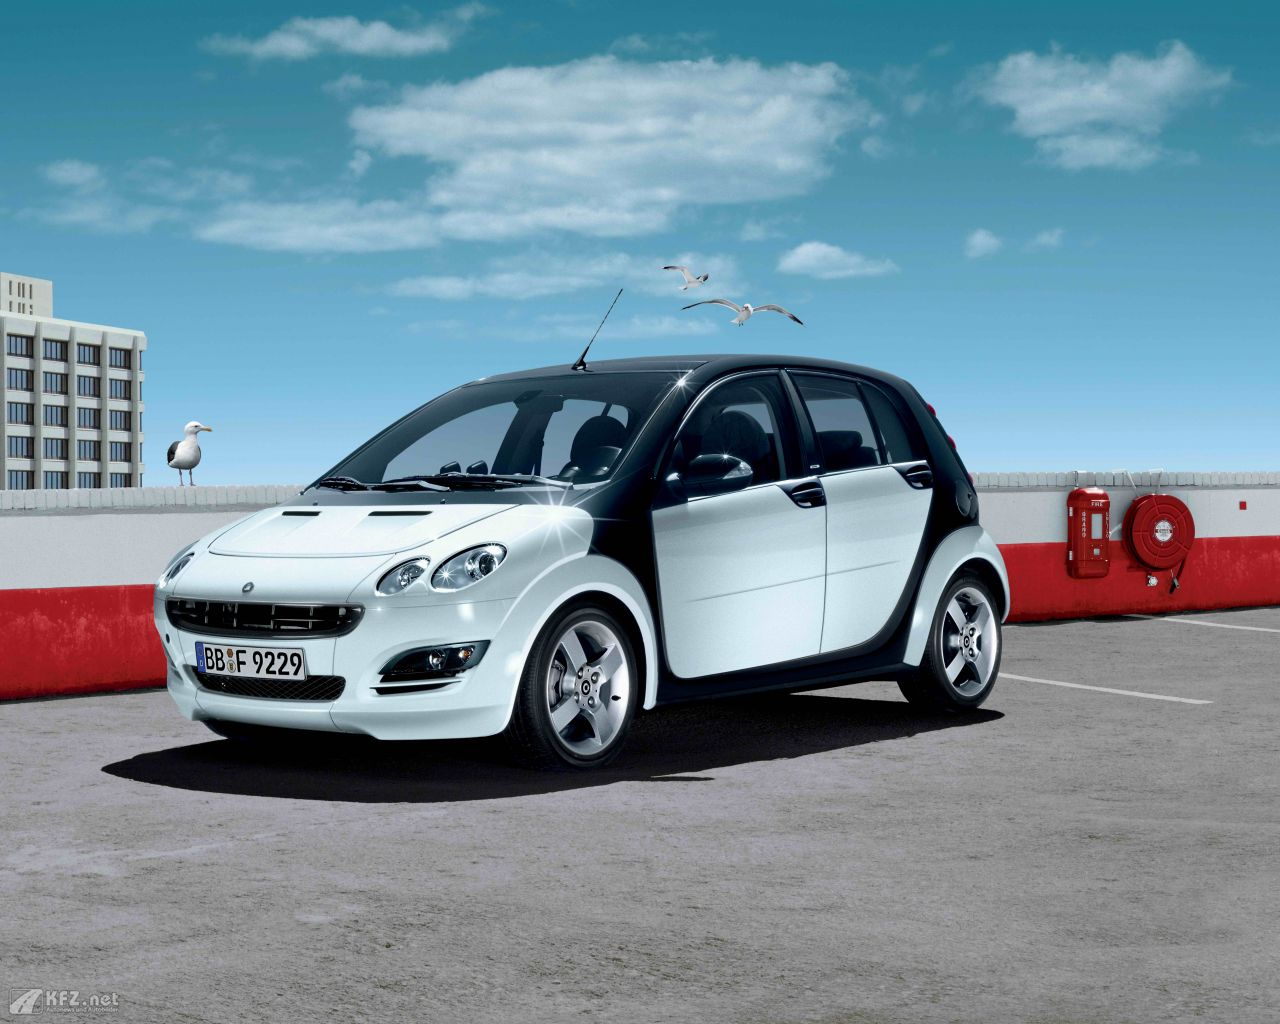 smart-forfour-1280x1024-6